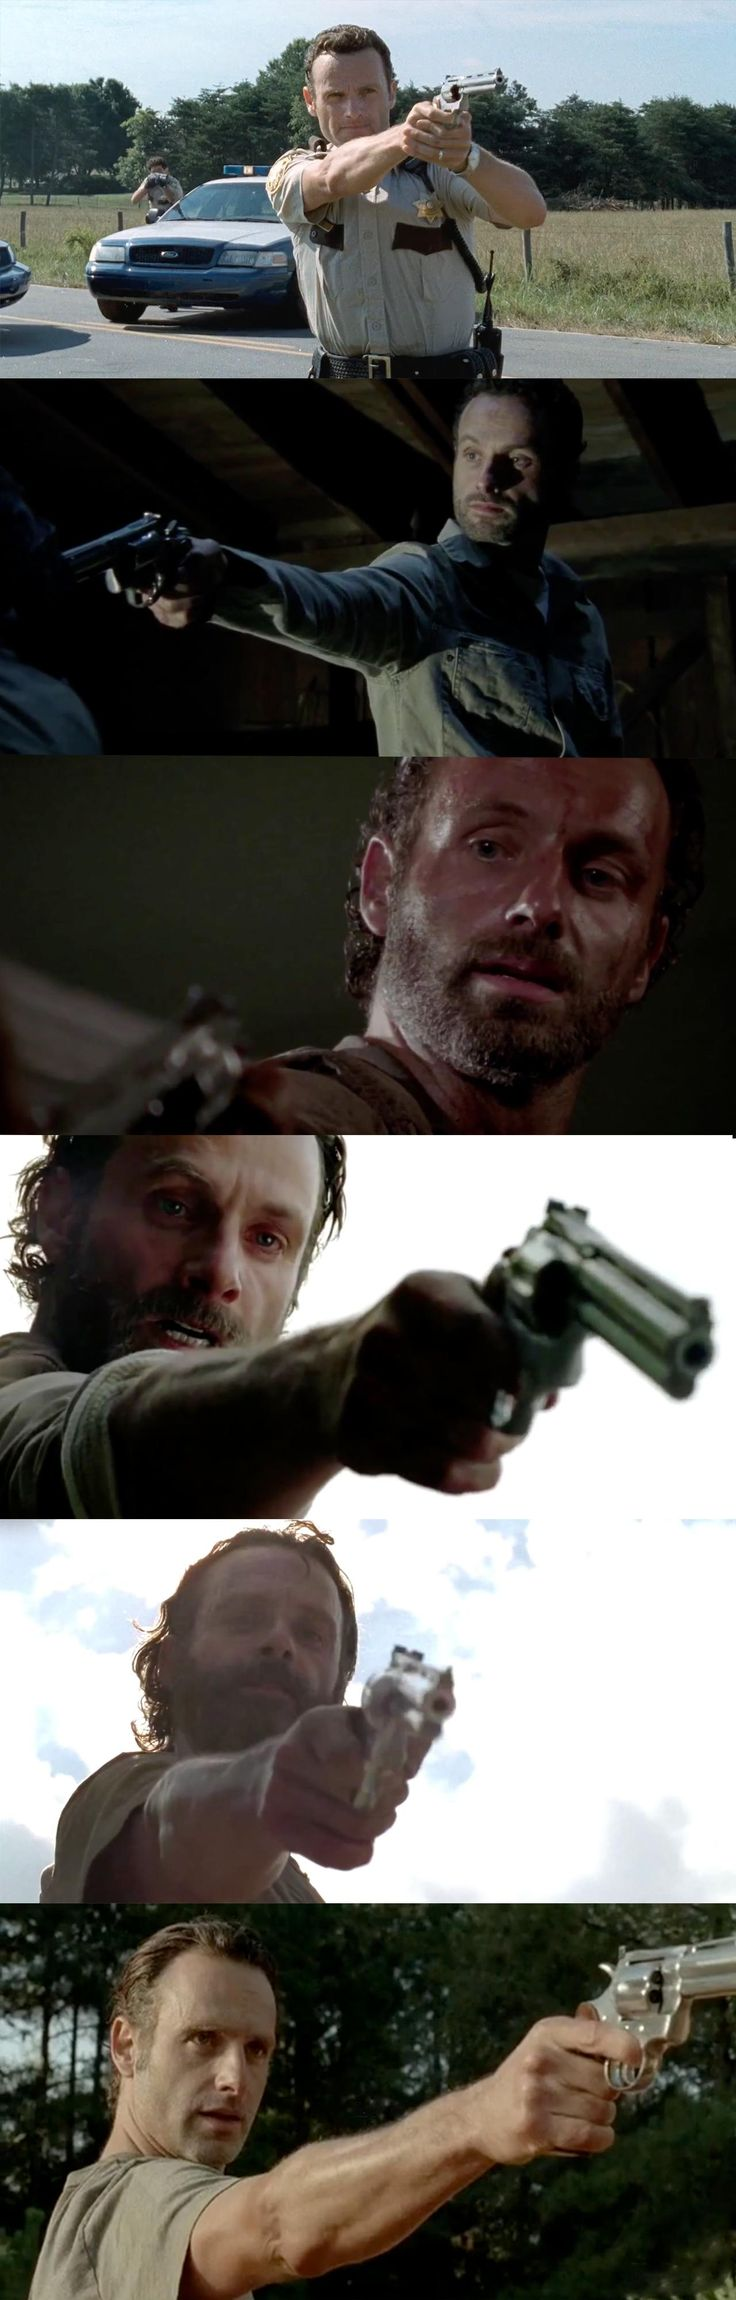 The evolution of Rick holding his gun